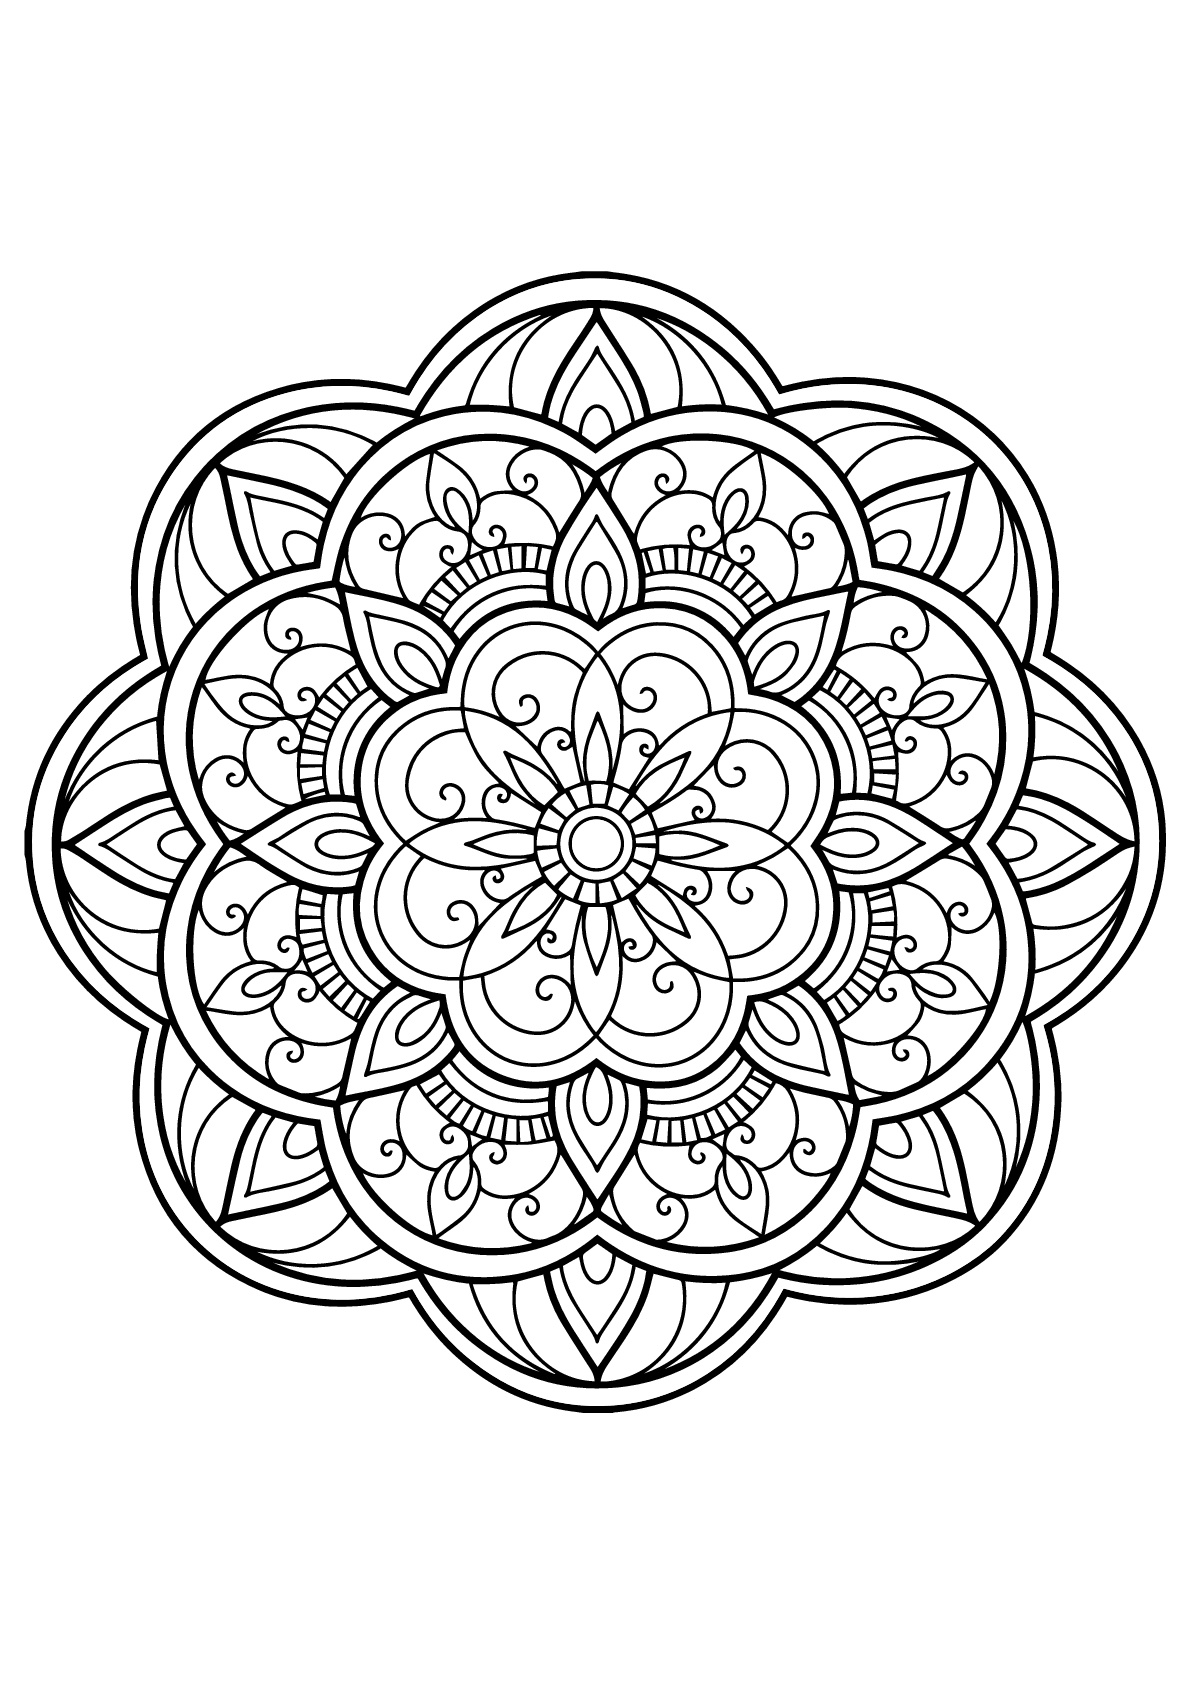 Mandala from free book for 14 | Mandalas - Coloring pages for adults ...